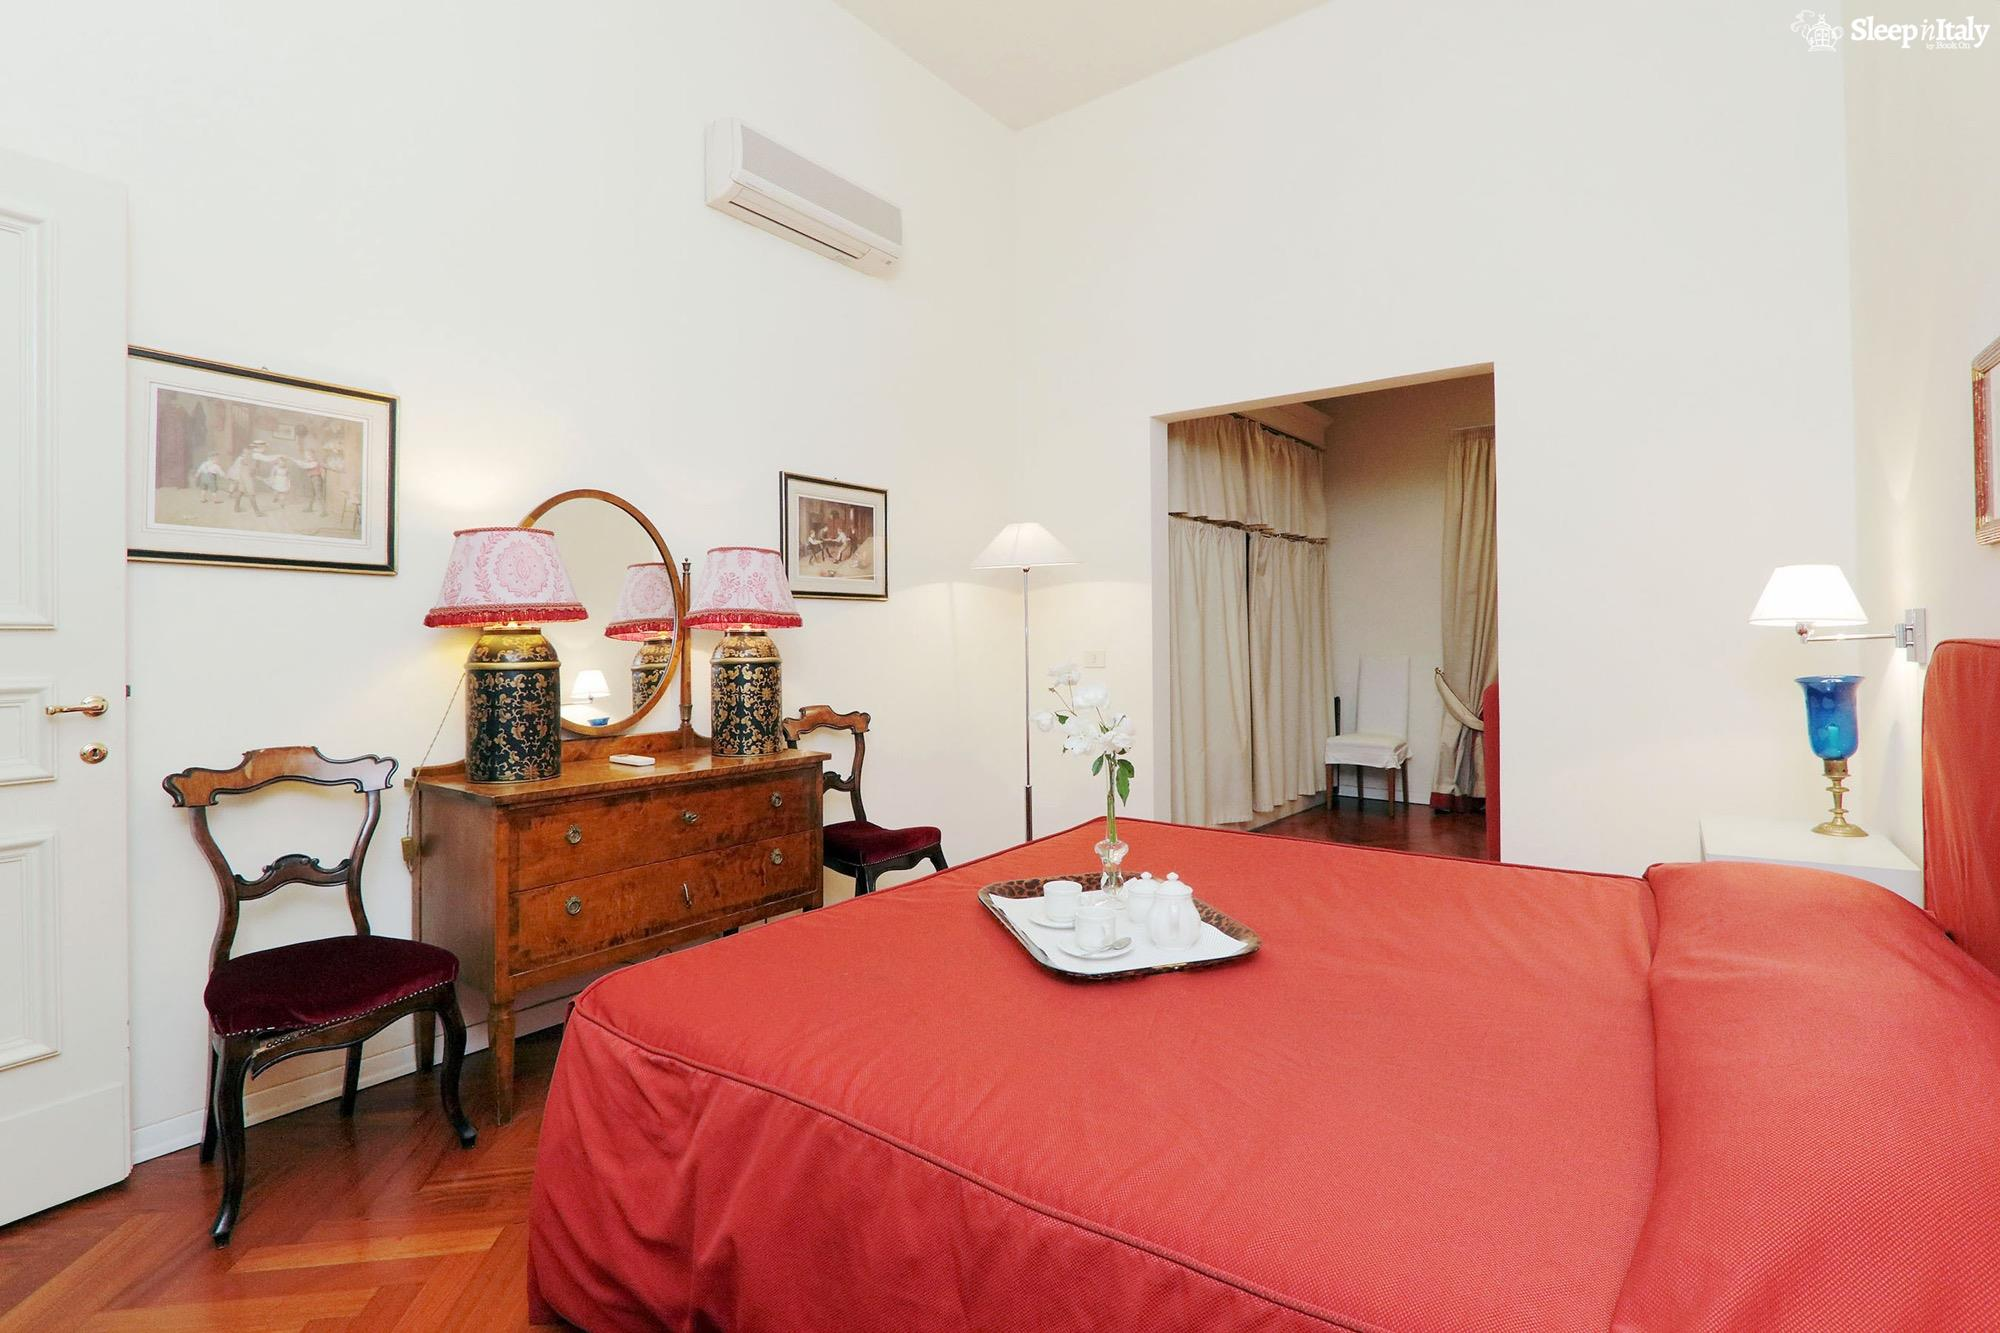 Florence apartments duomo cer 5 sleep in italy for Florence apartments